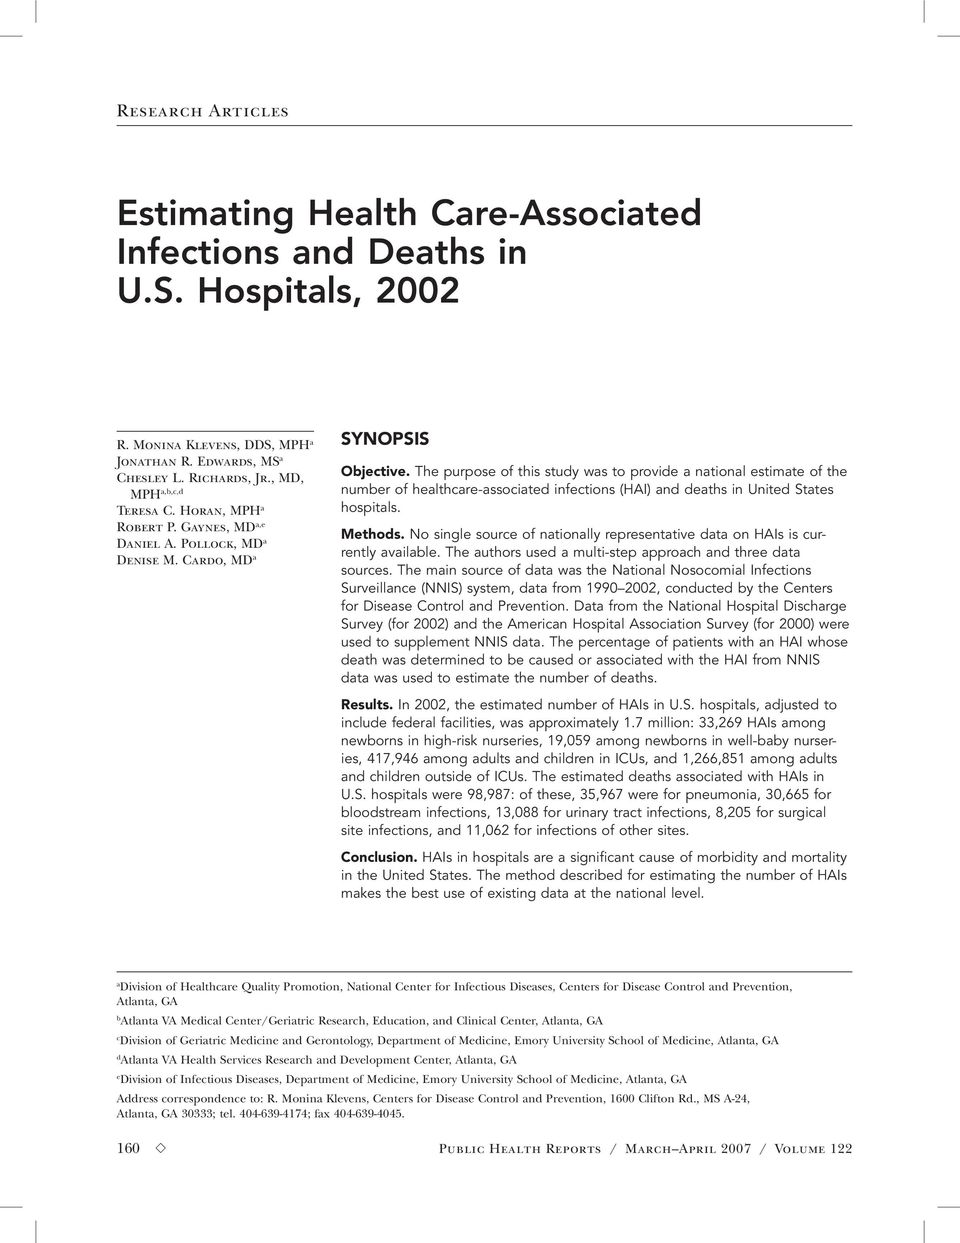 The purpose of this study was to provide a national estimate of the number of healthcare-associated infections (HAI) and deaths in United States hospitals. Methods.